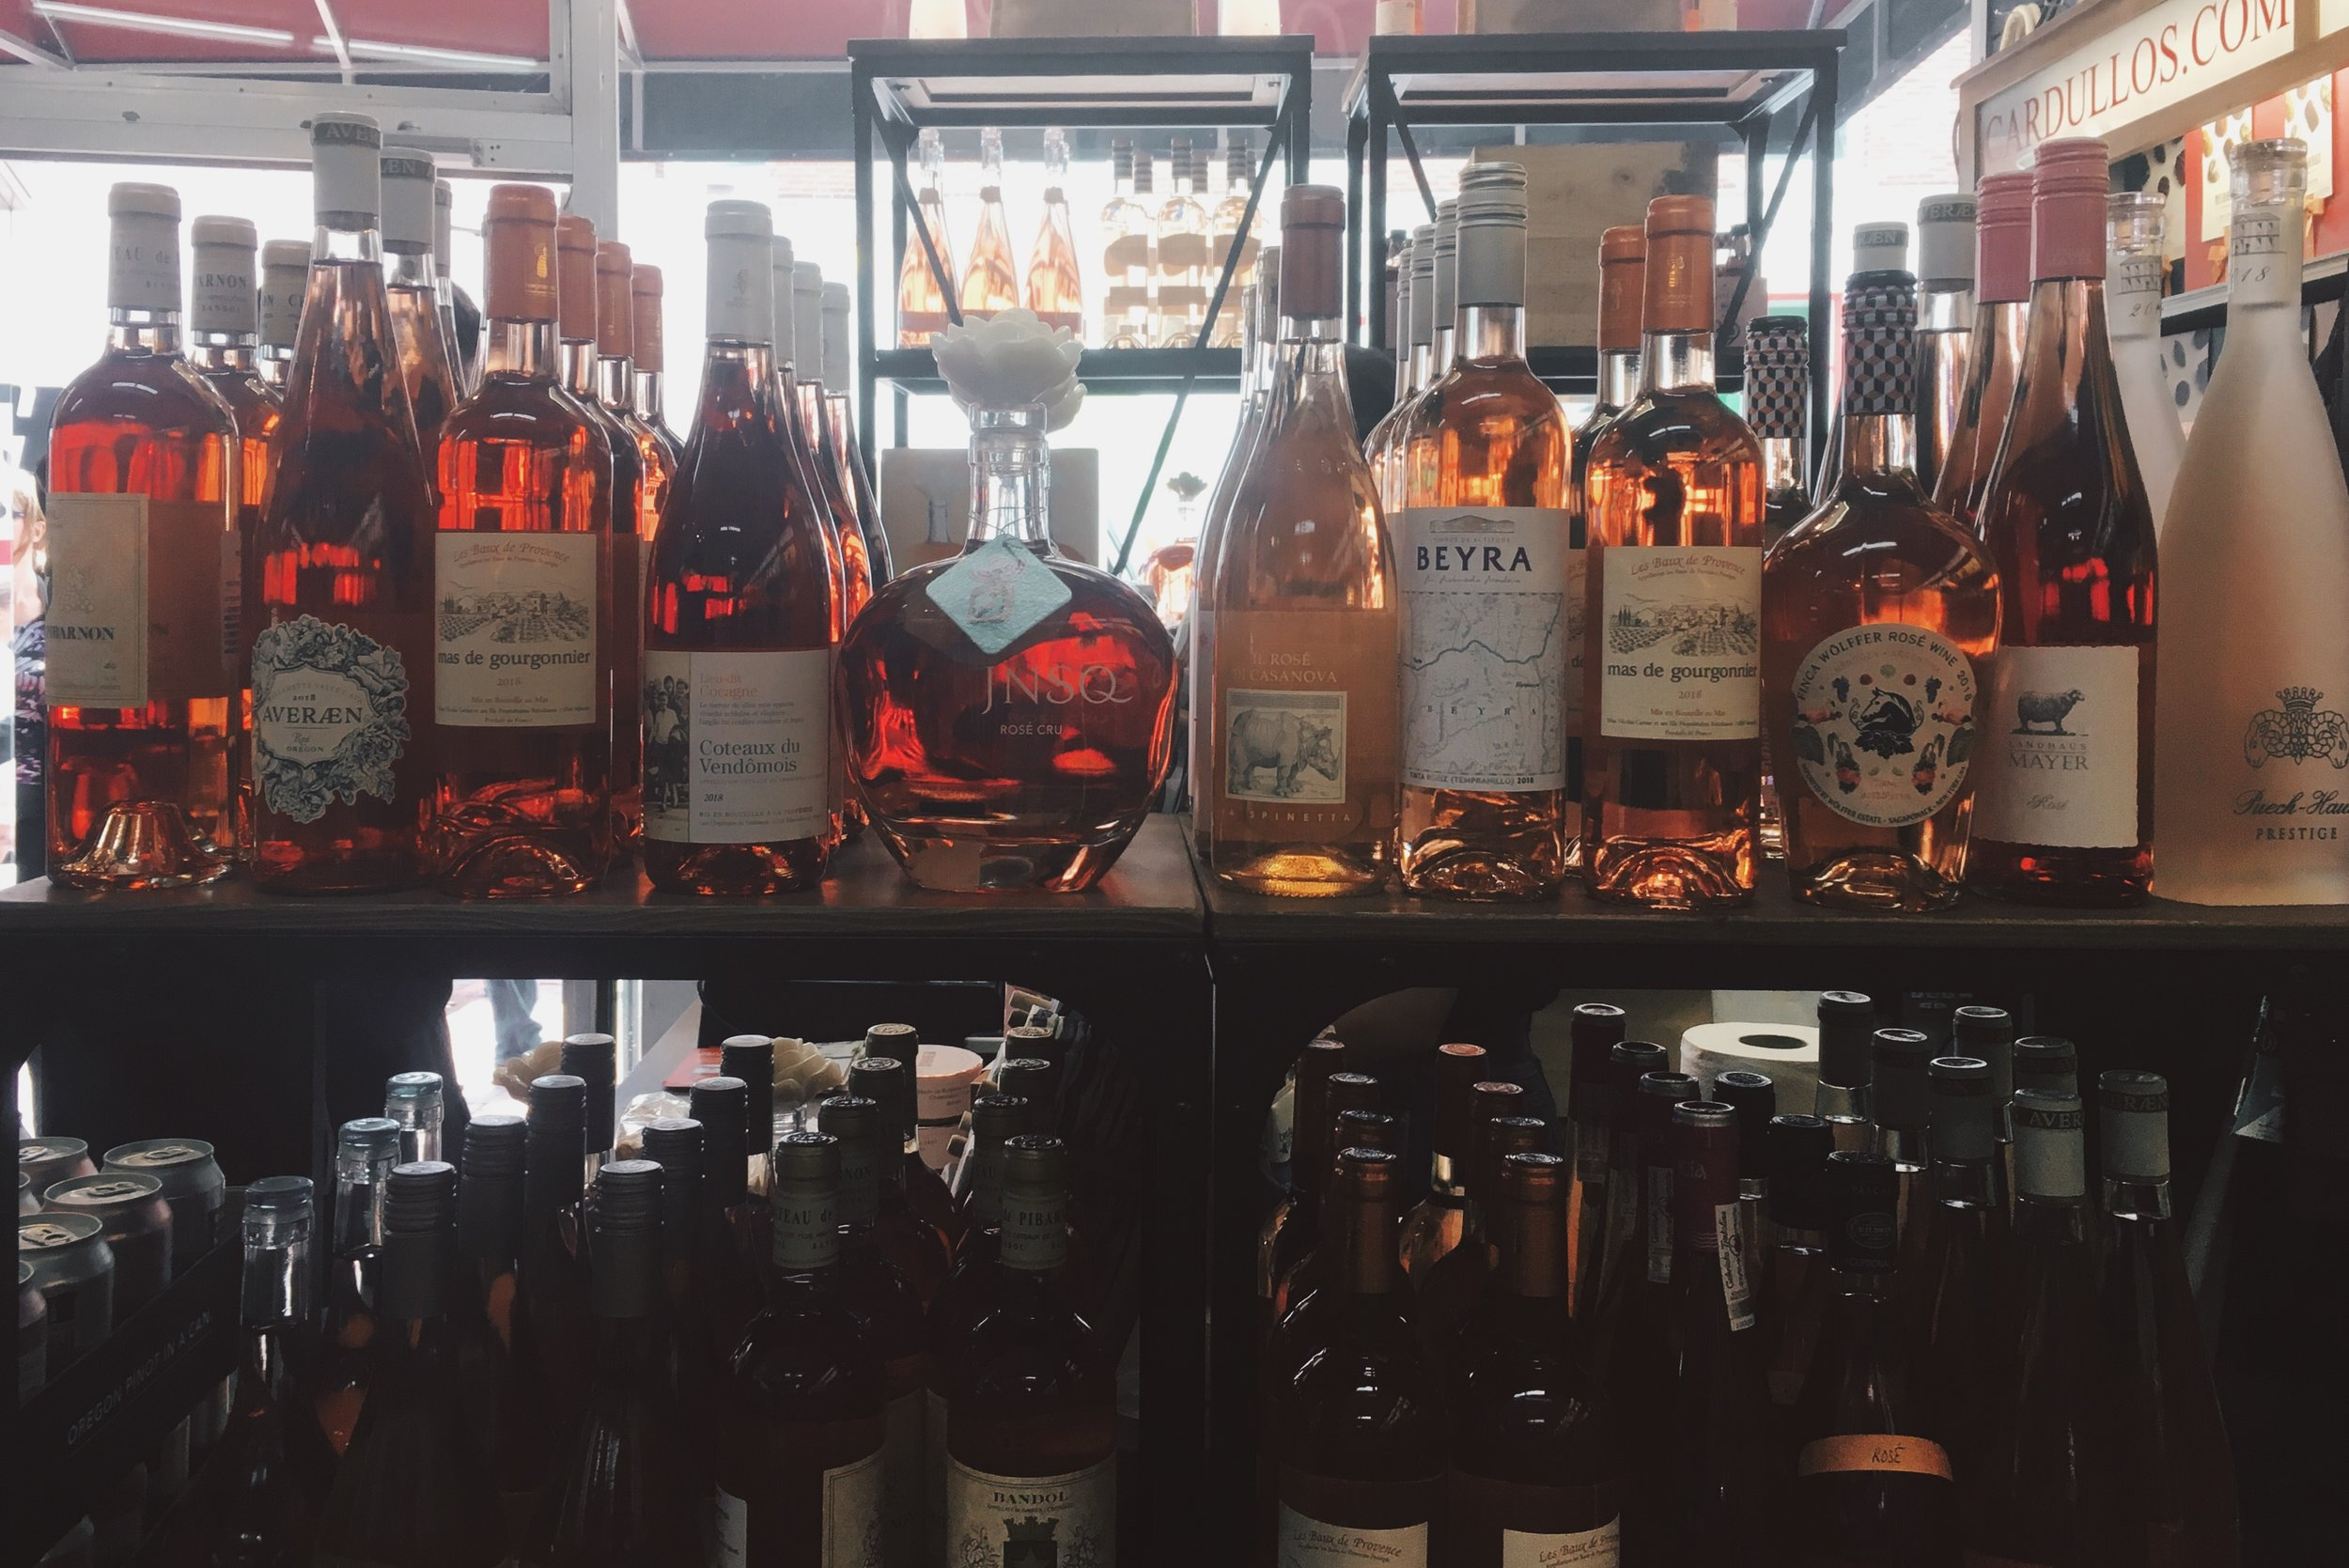 The expansive rosé selection at  Cardullo's Gourmet Shoppe  in Harvard Square is matched only by their multinational range of imported snacks.